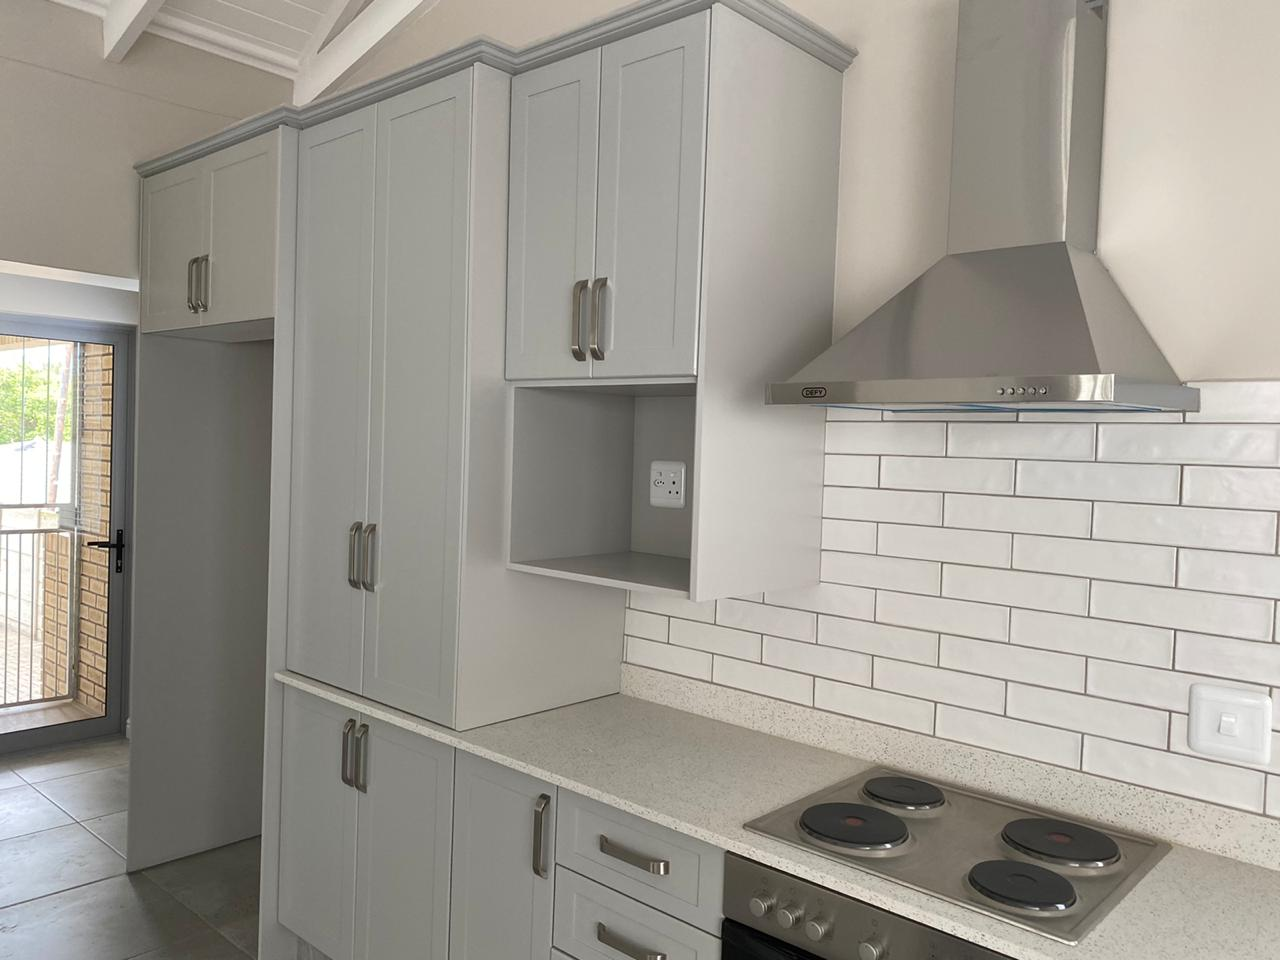 Kitchen - Newly built ranch-style house - Schoeman Trio Builders, Mossel Bay